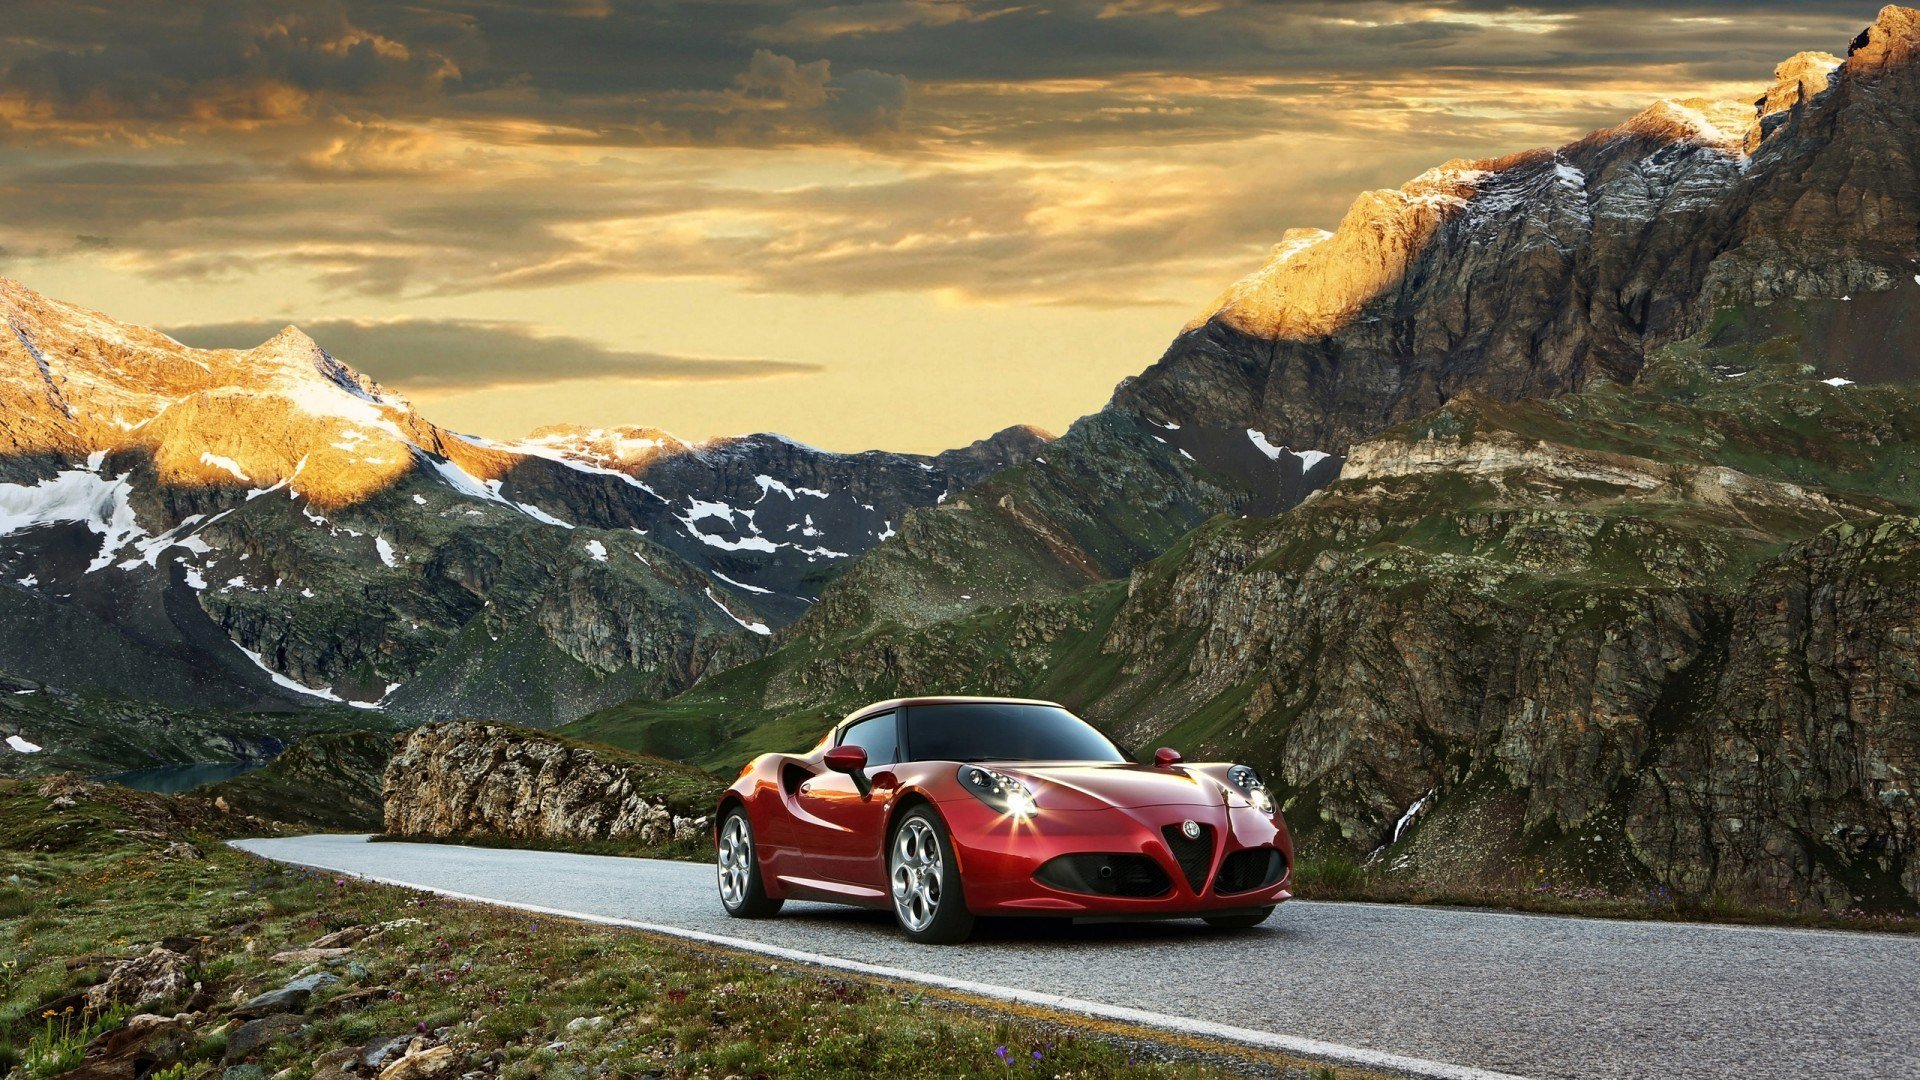 Latest 2014 Alfa Romeo 4C Wallpaper Hd Car Wallpapers Id 3709 Free Download